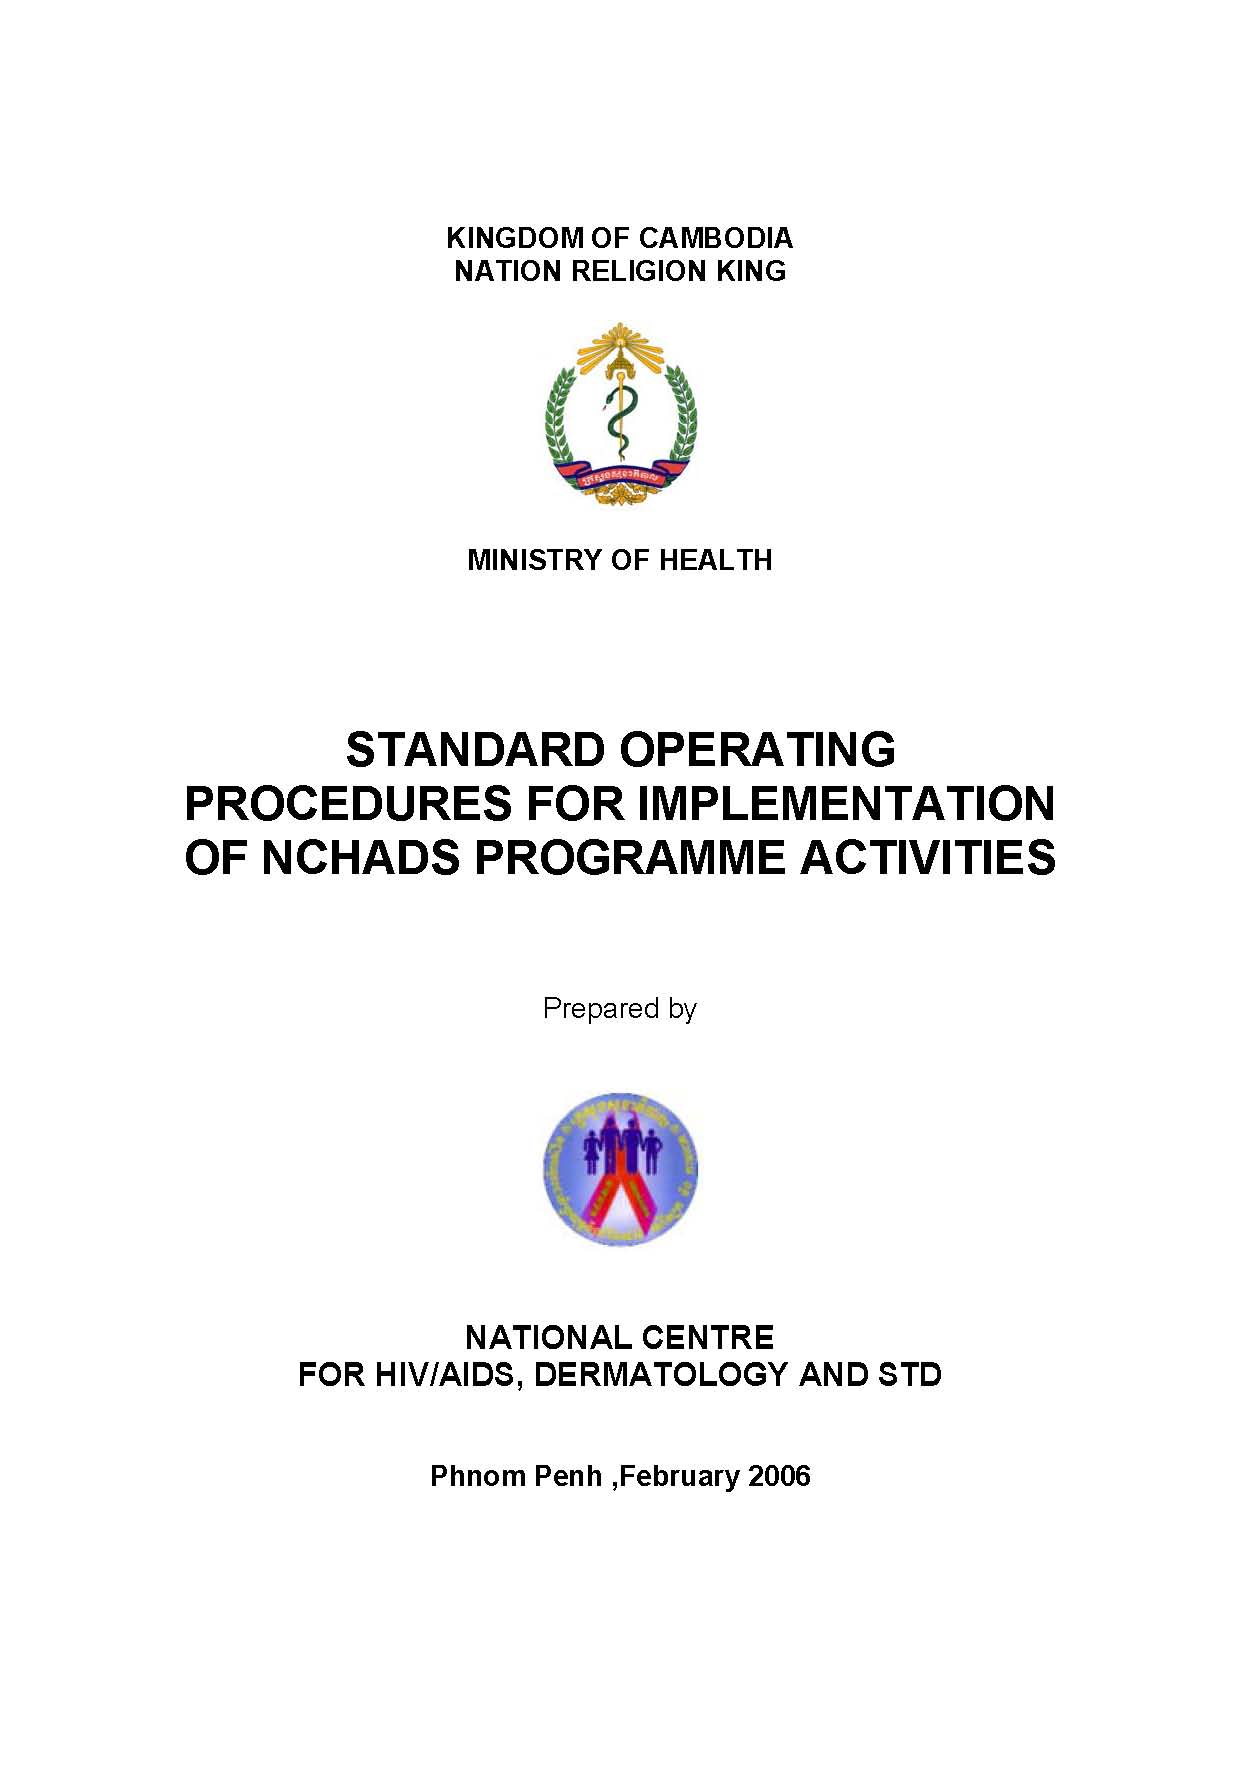 SOP for Implementation of NCHADS Programme Activities